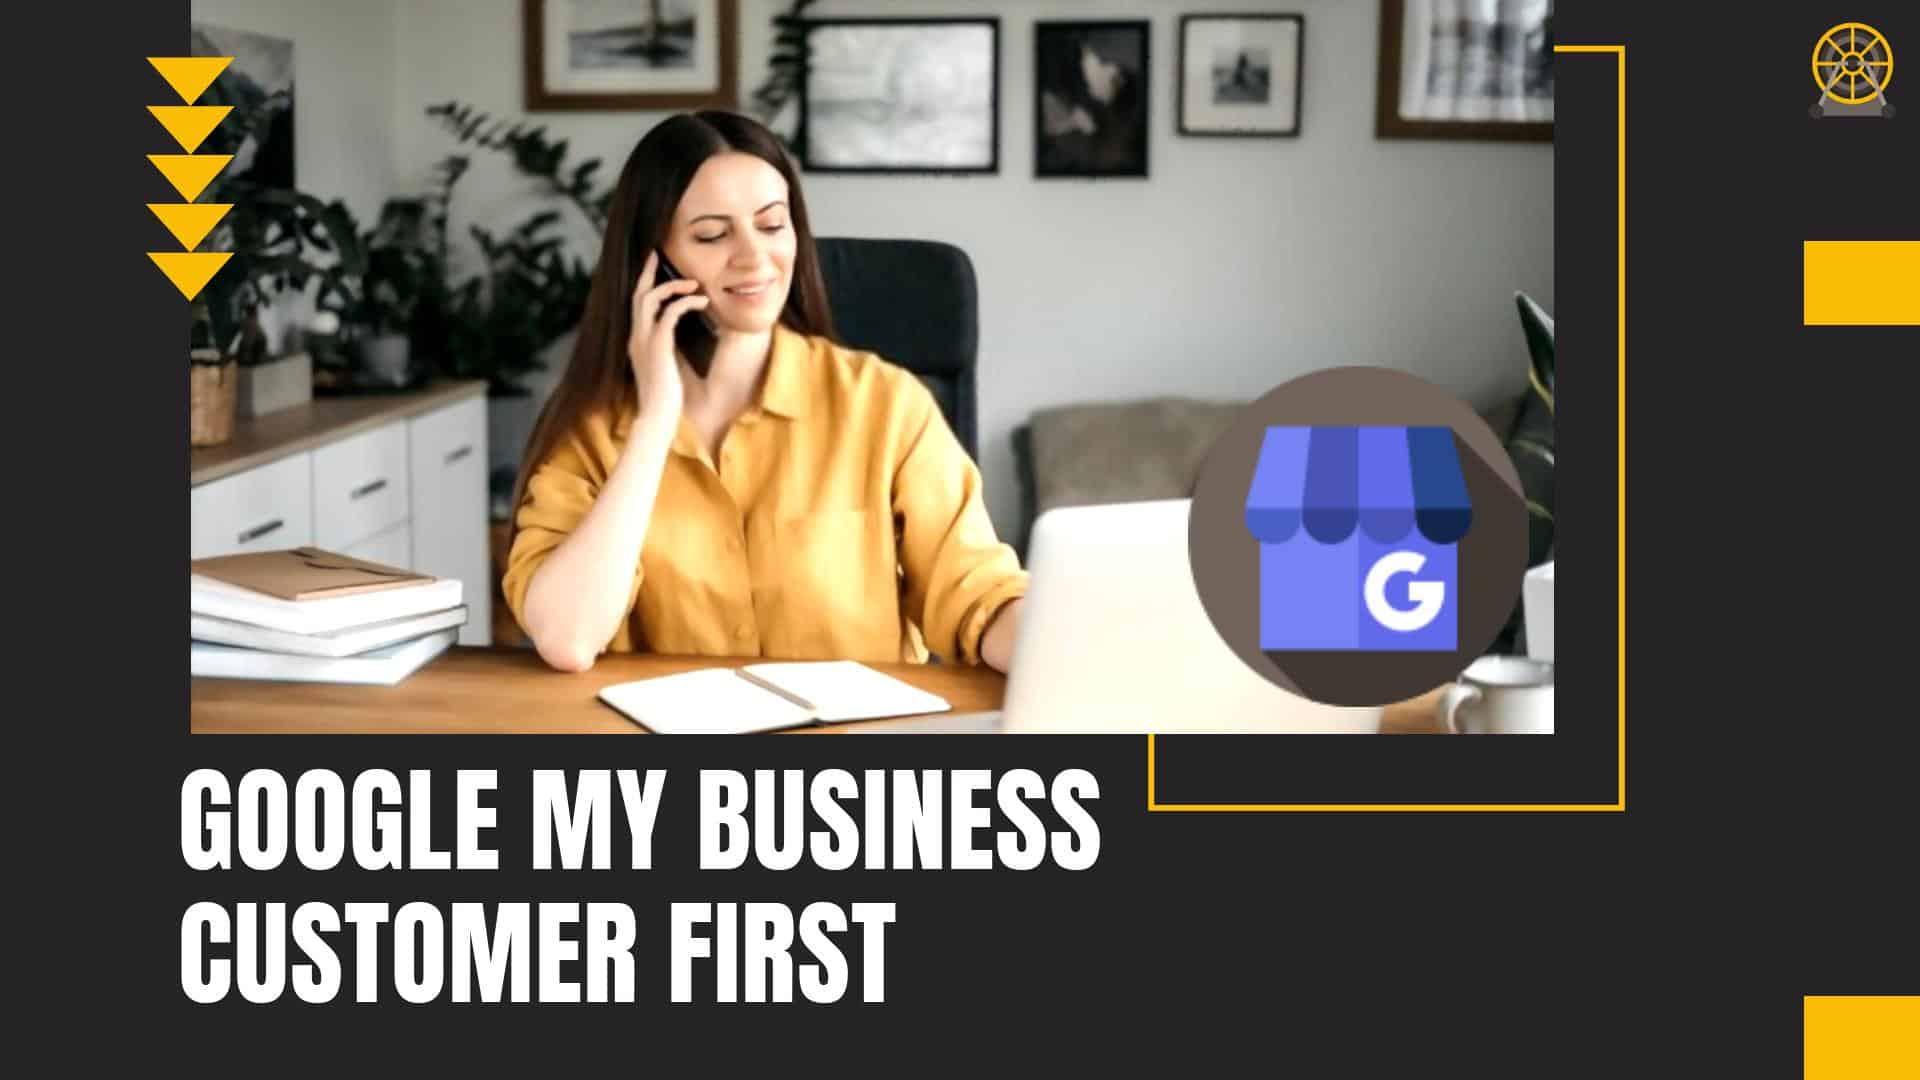 Google My Business Customer First Rooter Marketing